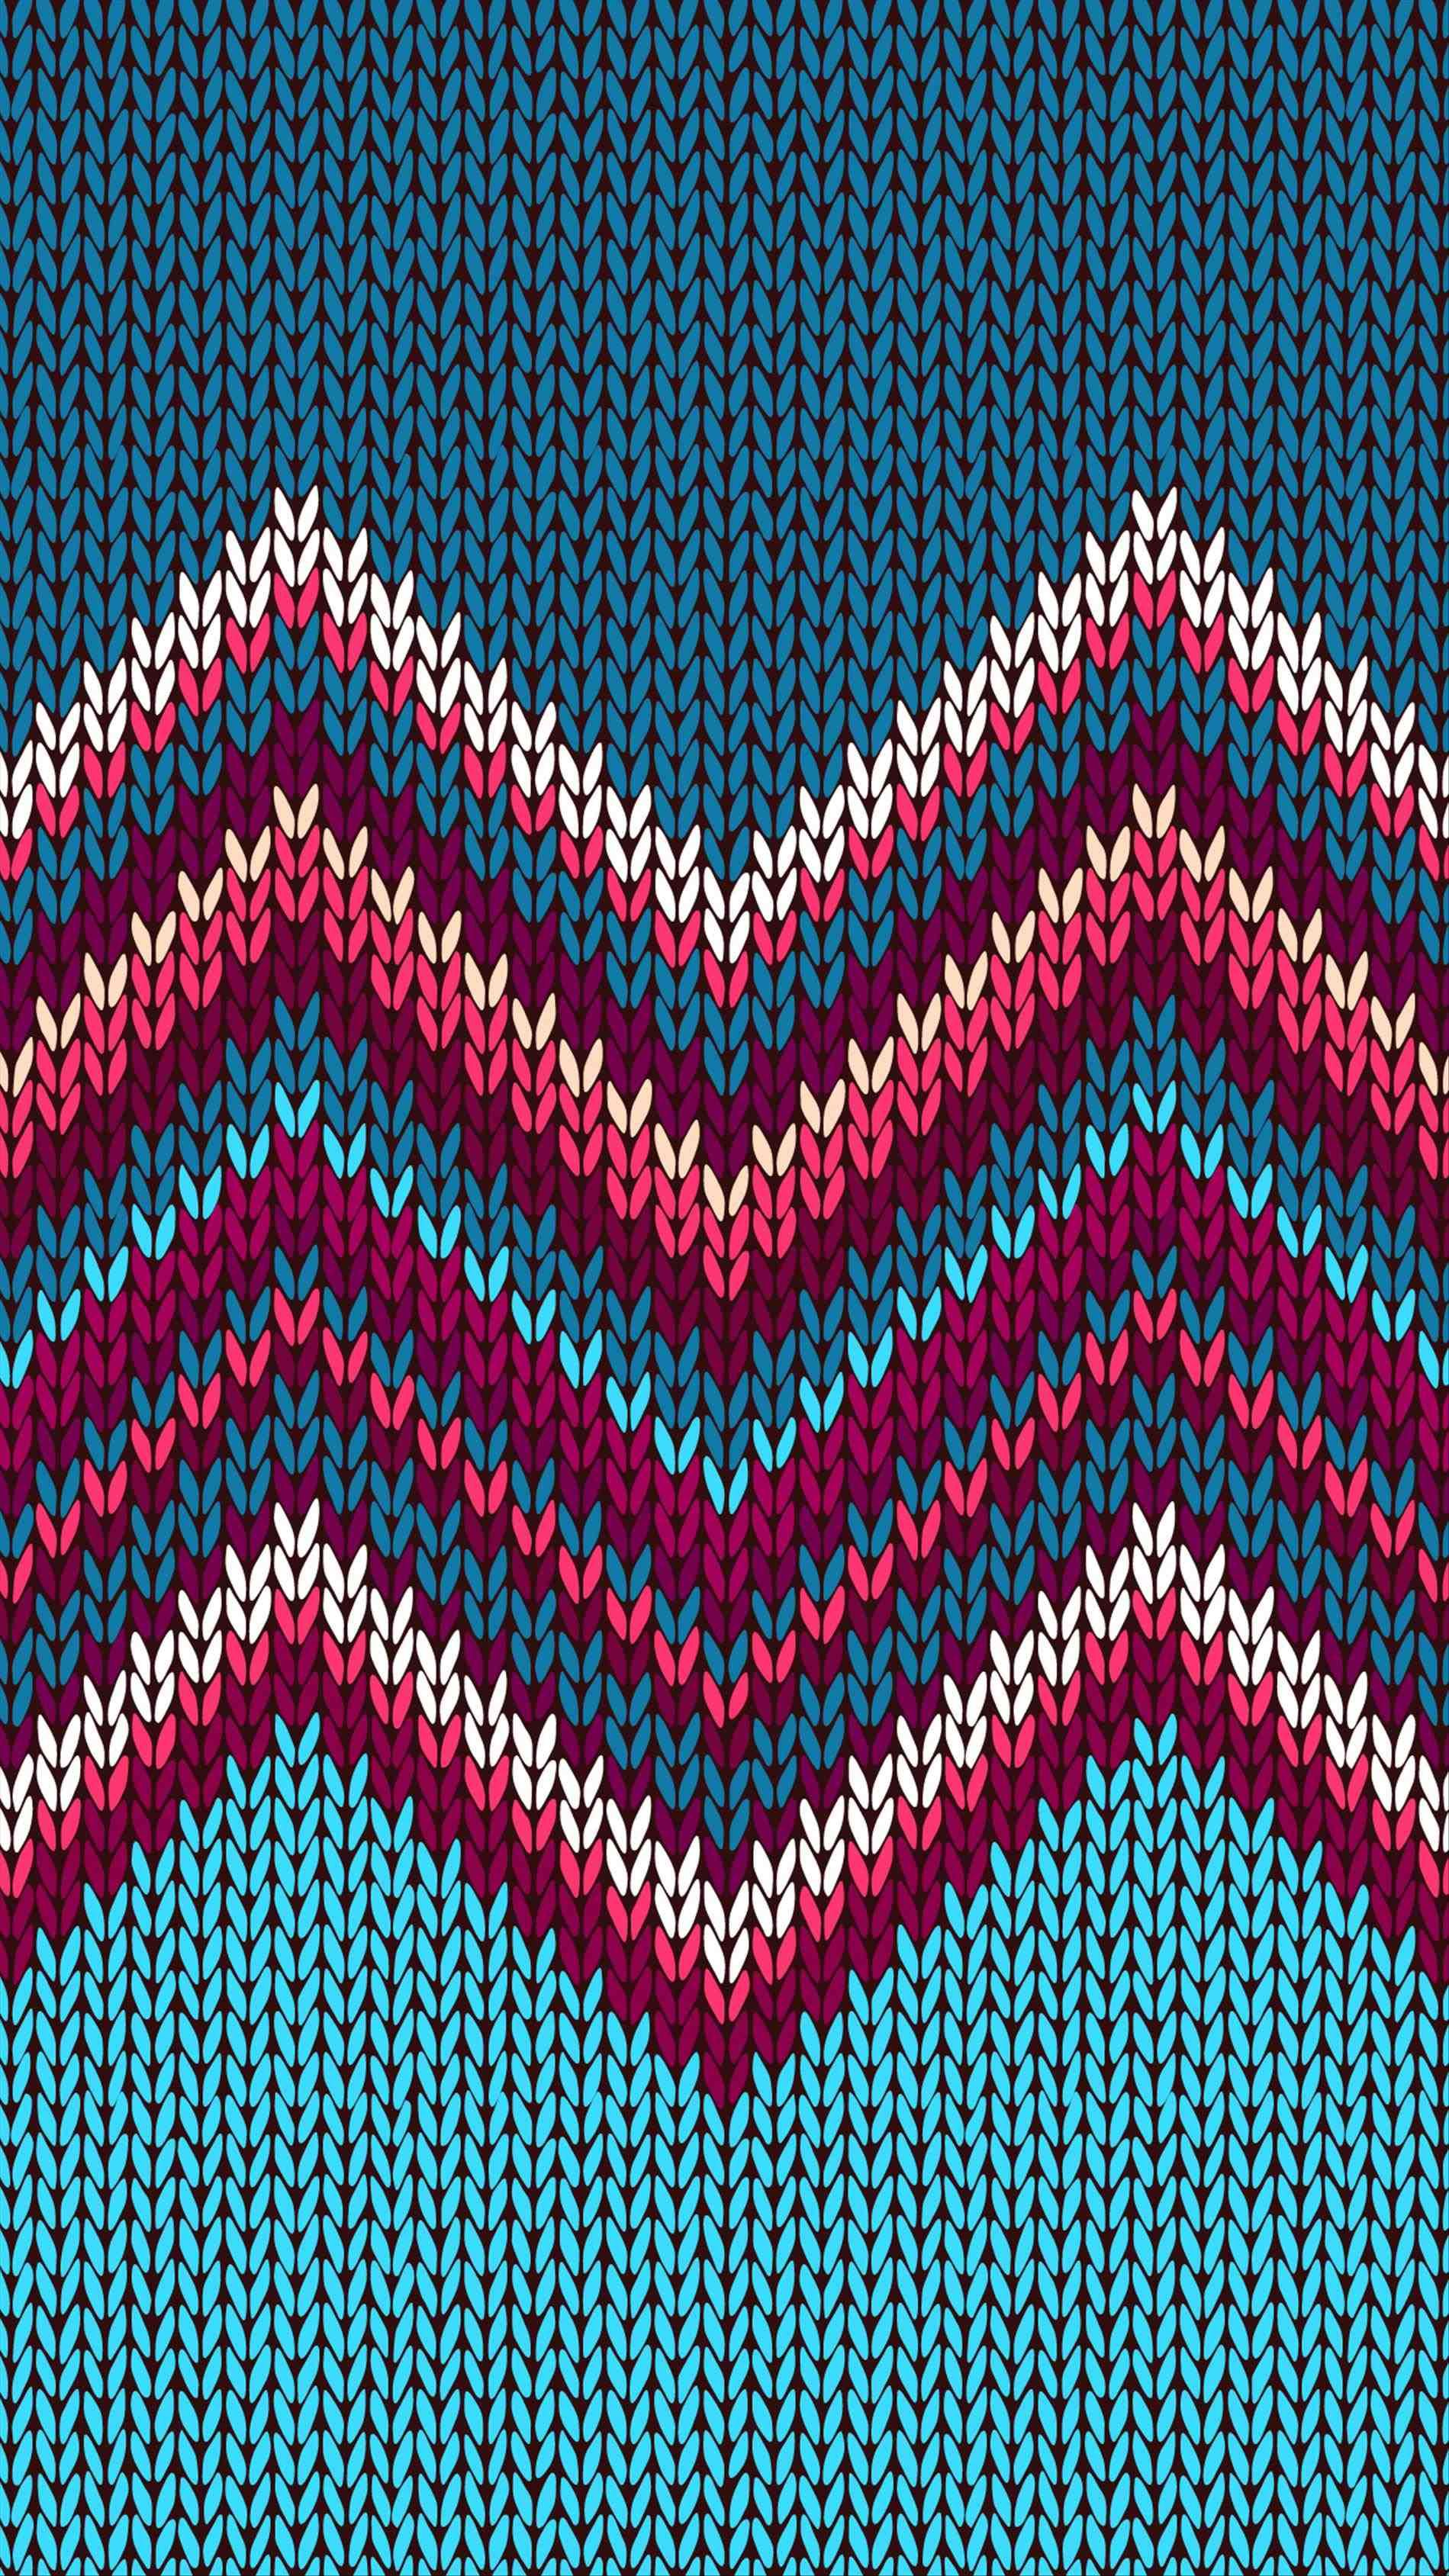 new christmas sweater wallpaper iphone at temasisteminet - Christmas Sweater Wallpaper